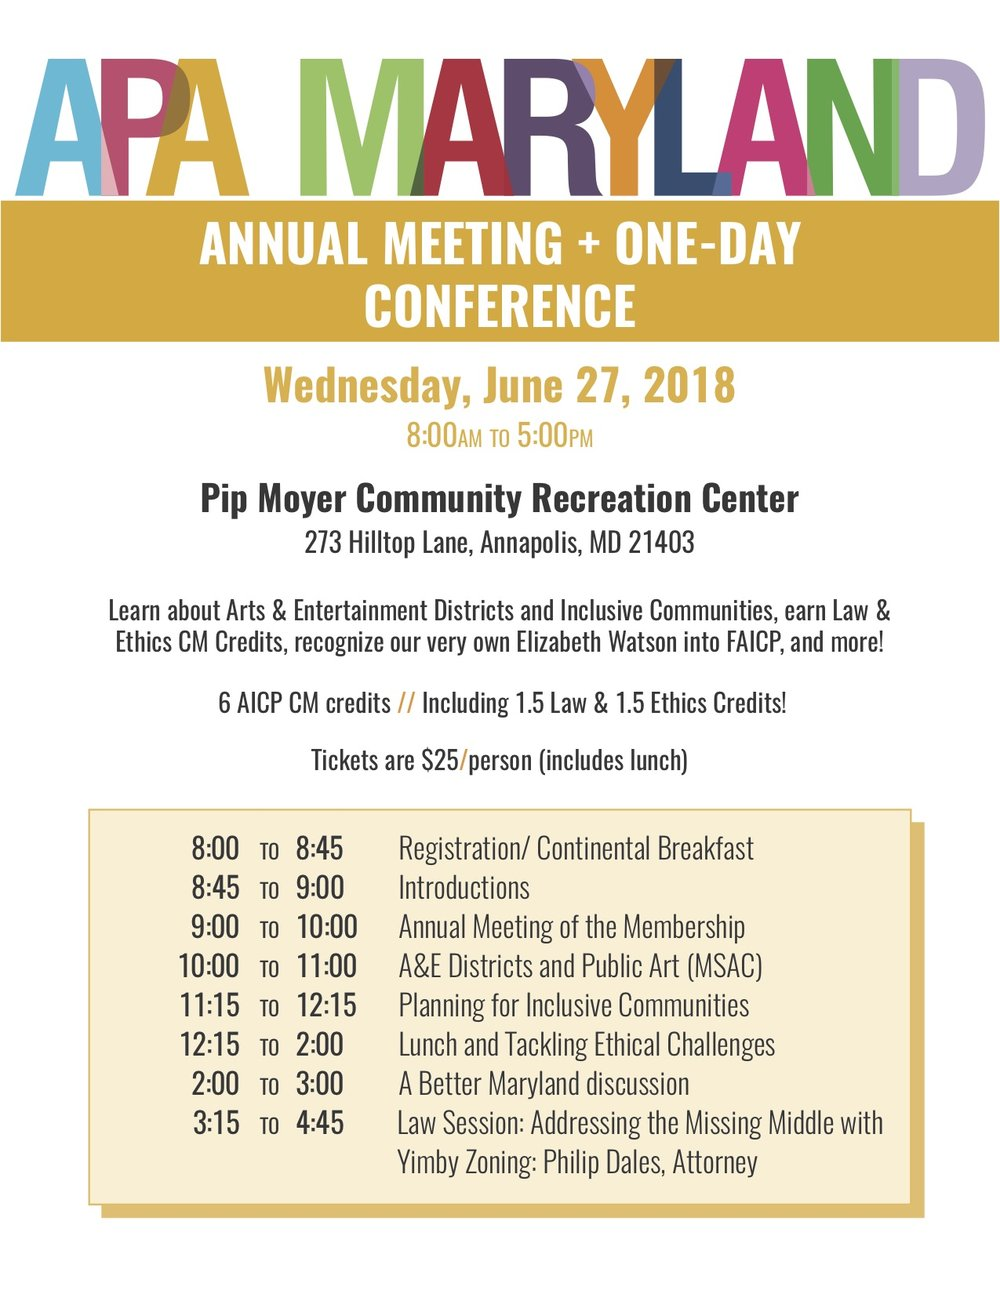 APA Annual Meeting Flyer.jpg